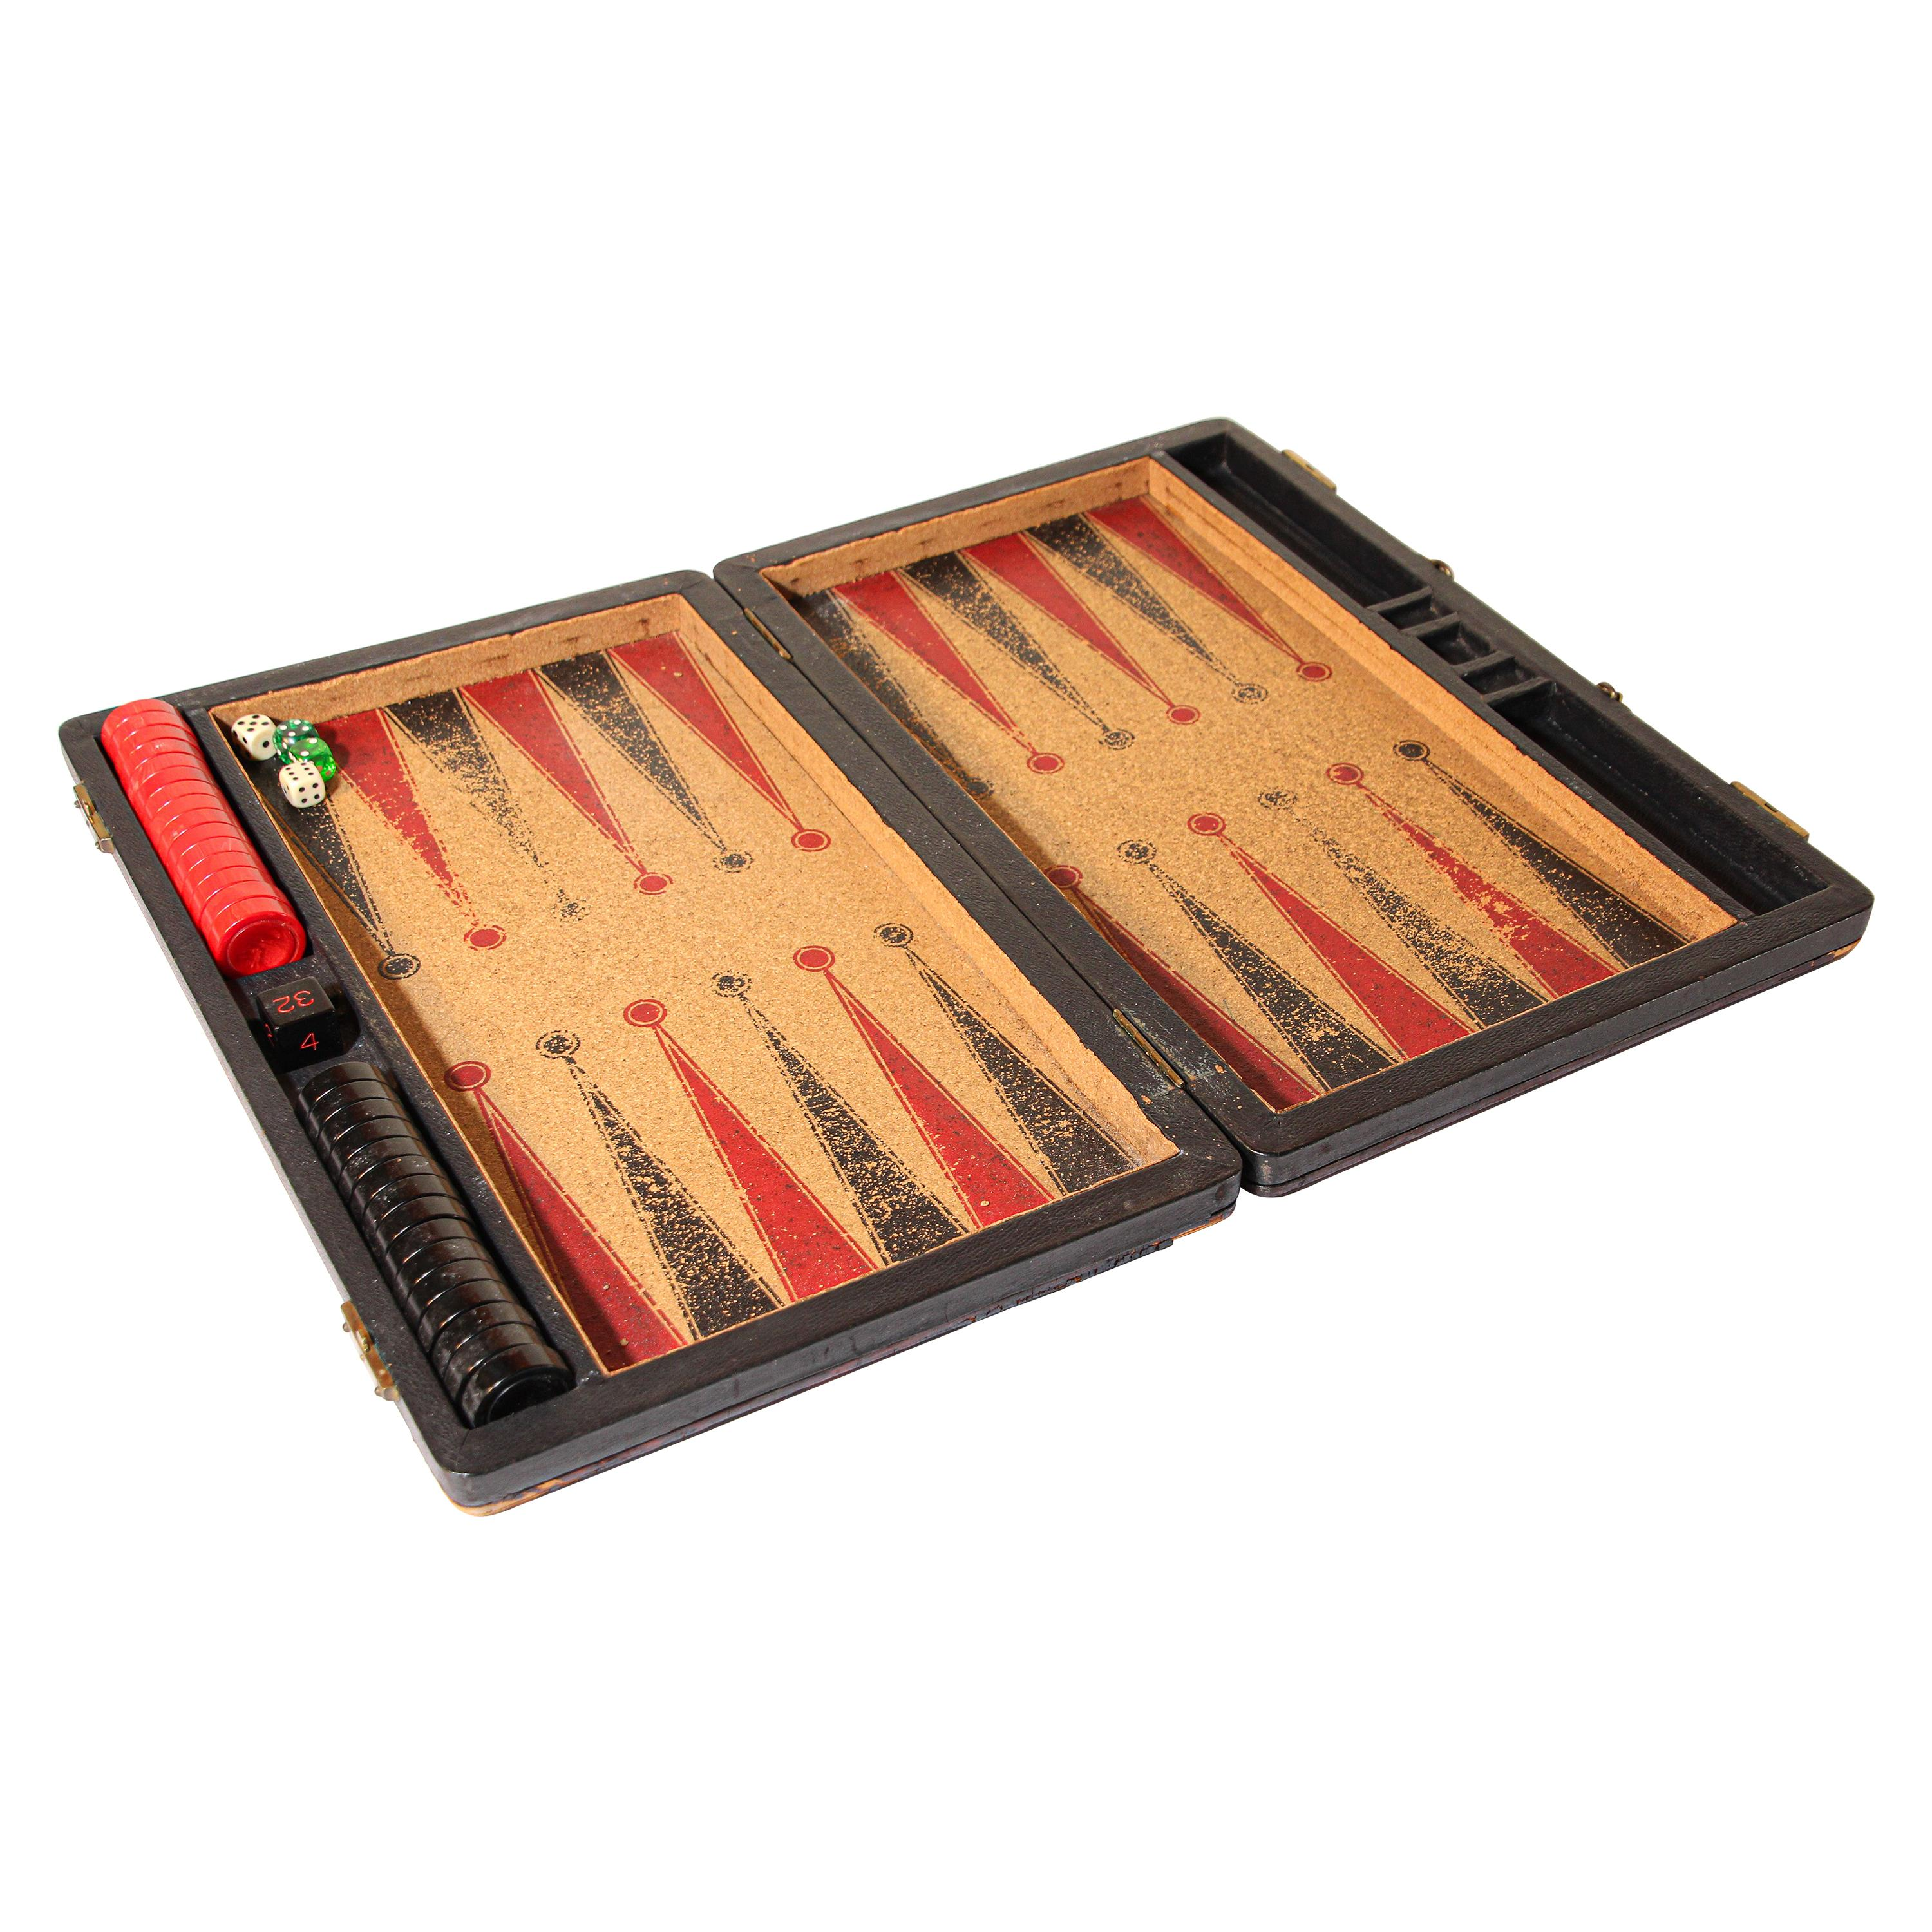 Antique Large Red and Black Backgammon Game with Bakelite Pieces